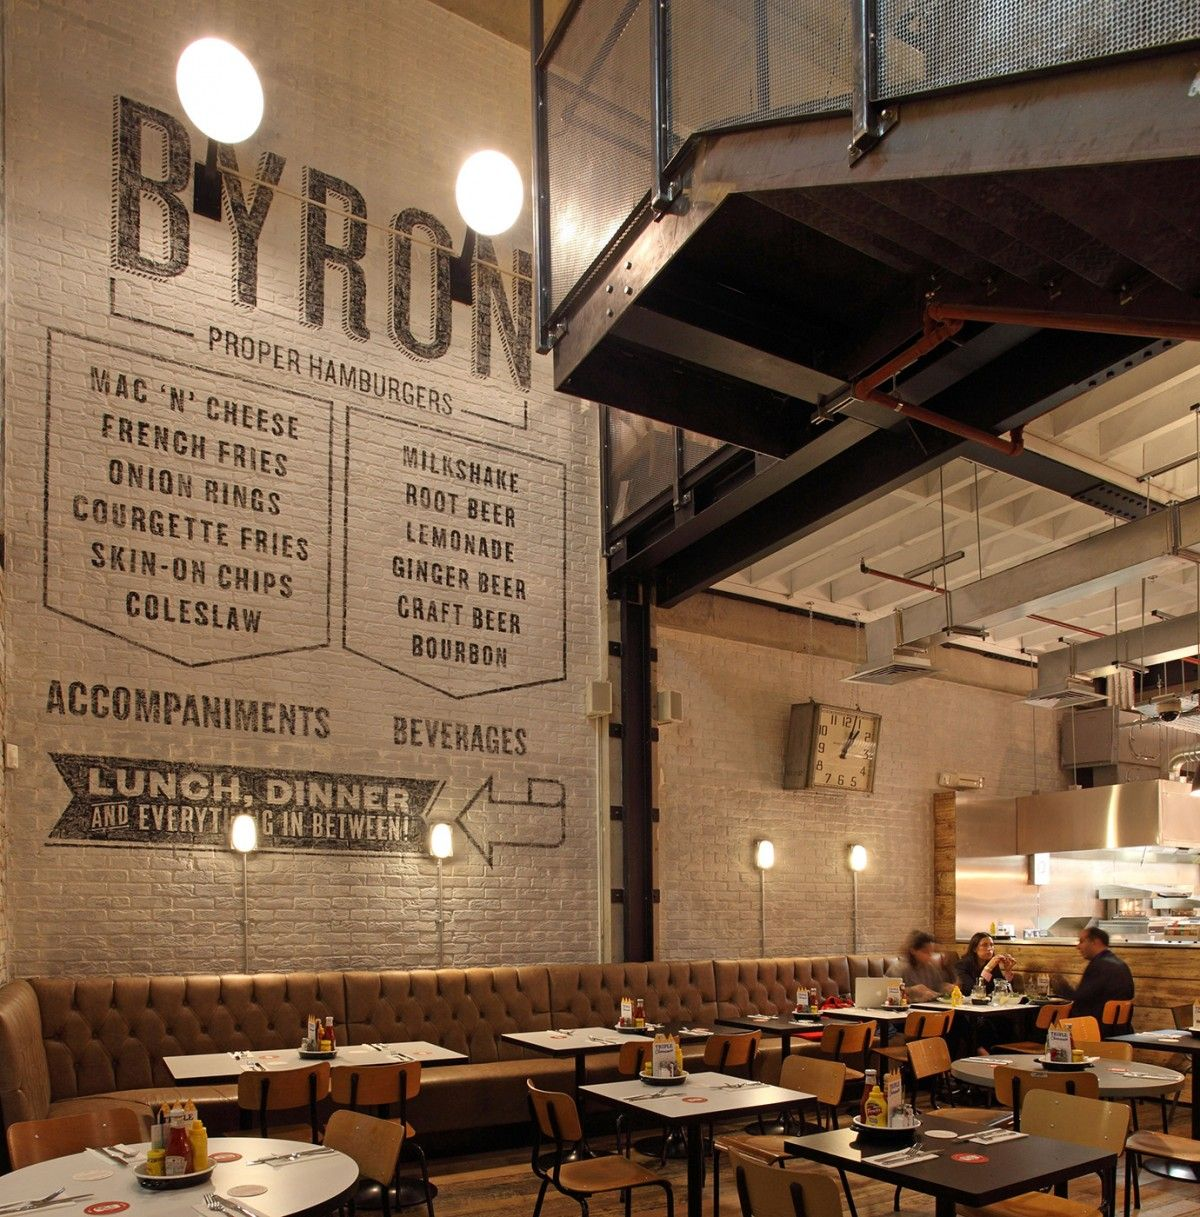 charlie smith design — byron signage | mono cafe | pinterest | signage